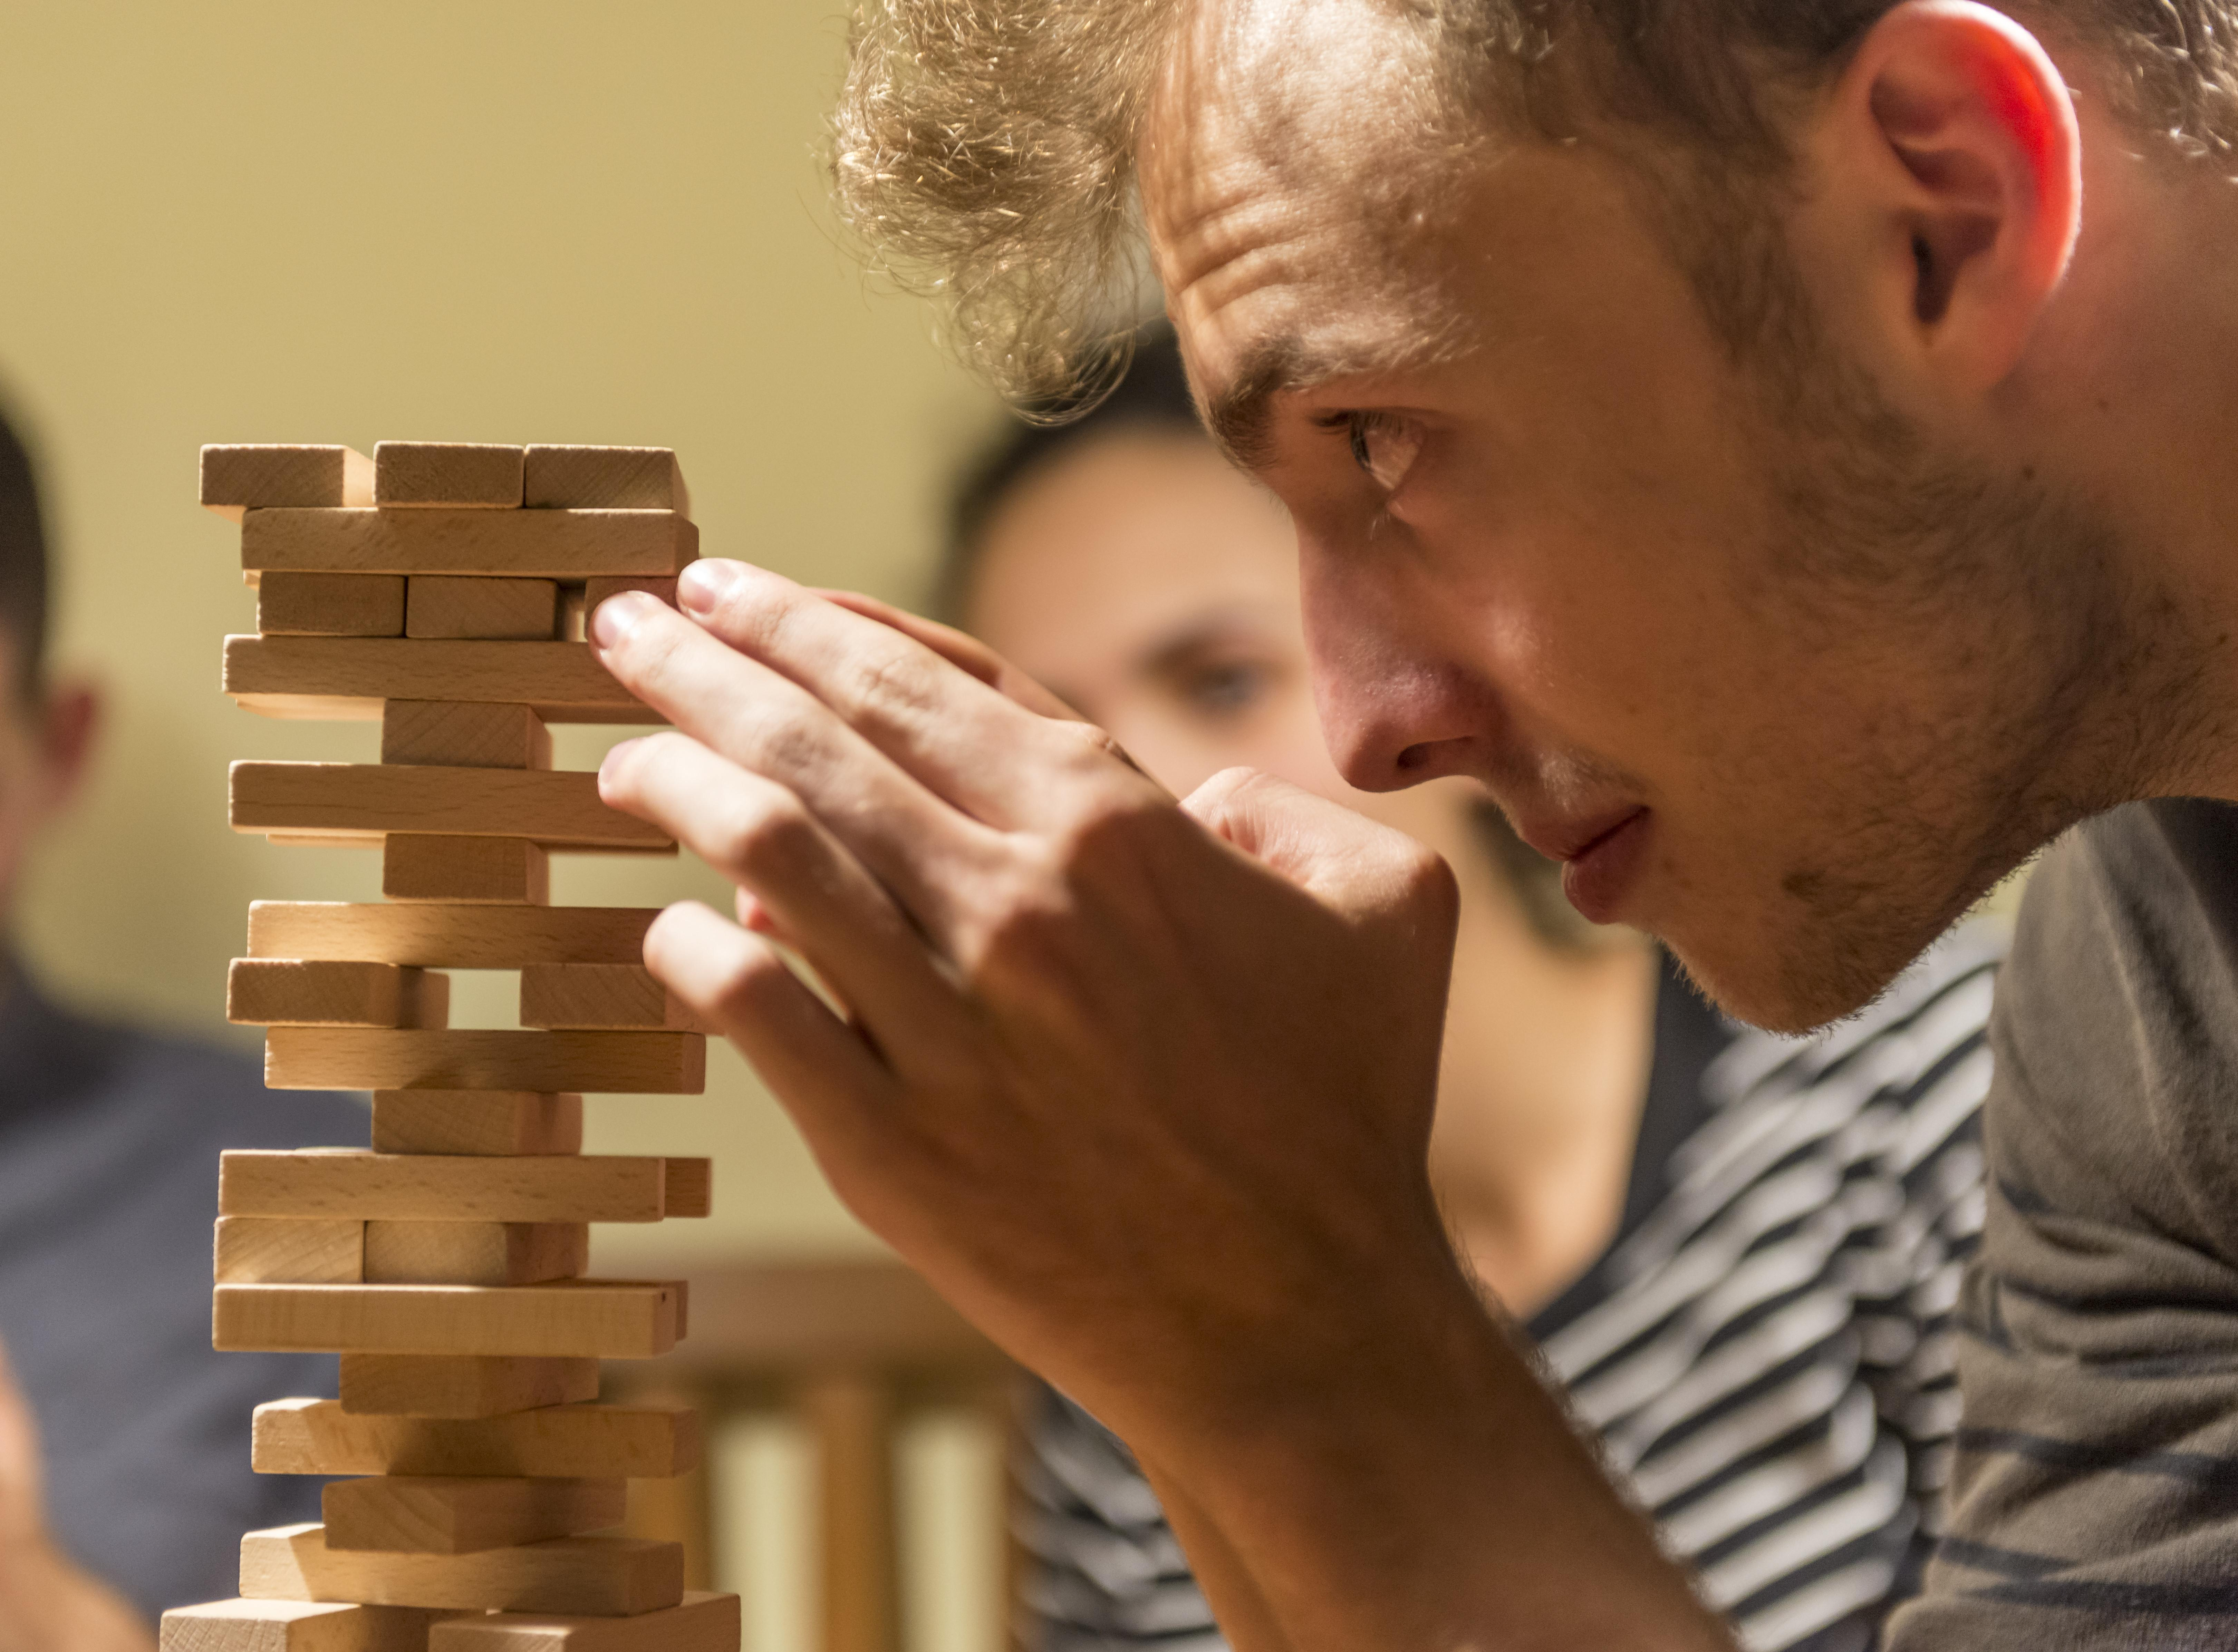 Young man plays Jenga, stacking a tower with wooden blocks, concentrated — ibxmmw04593472.jpg